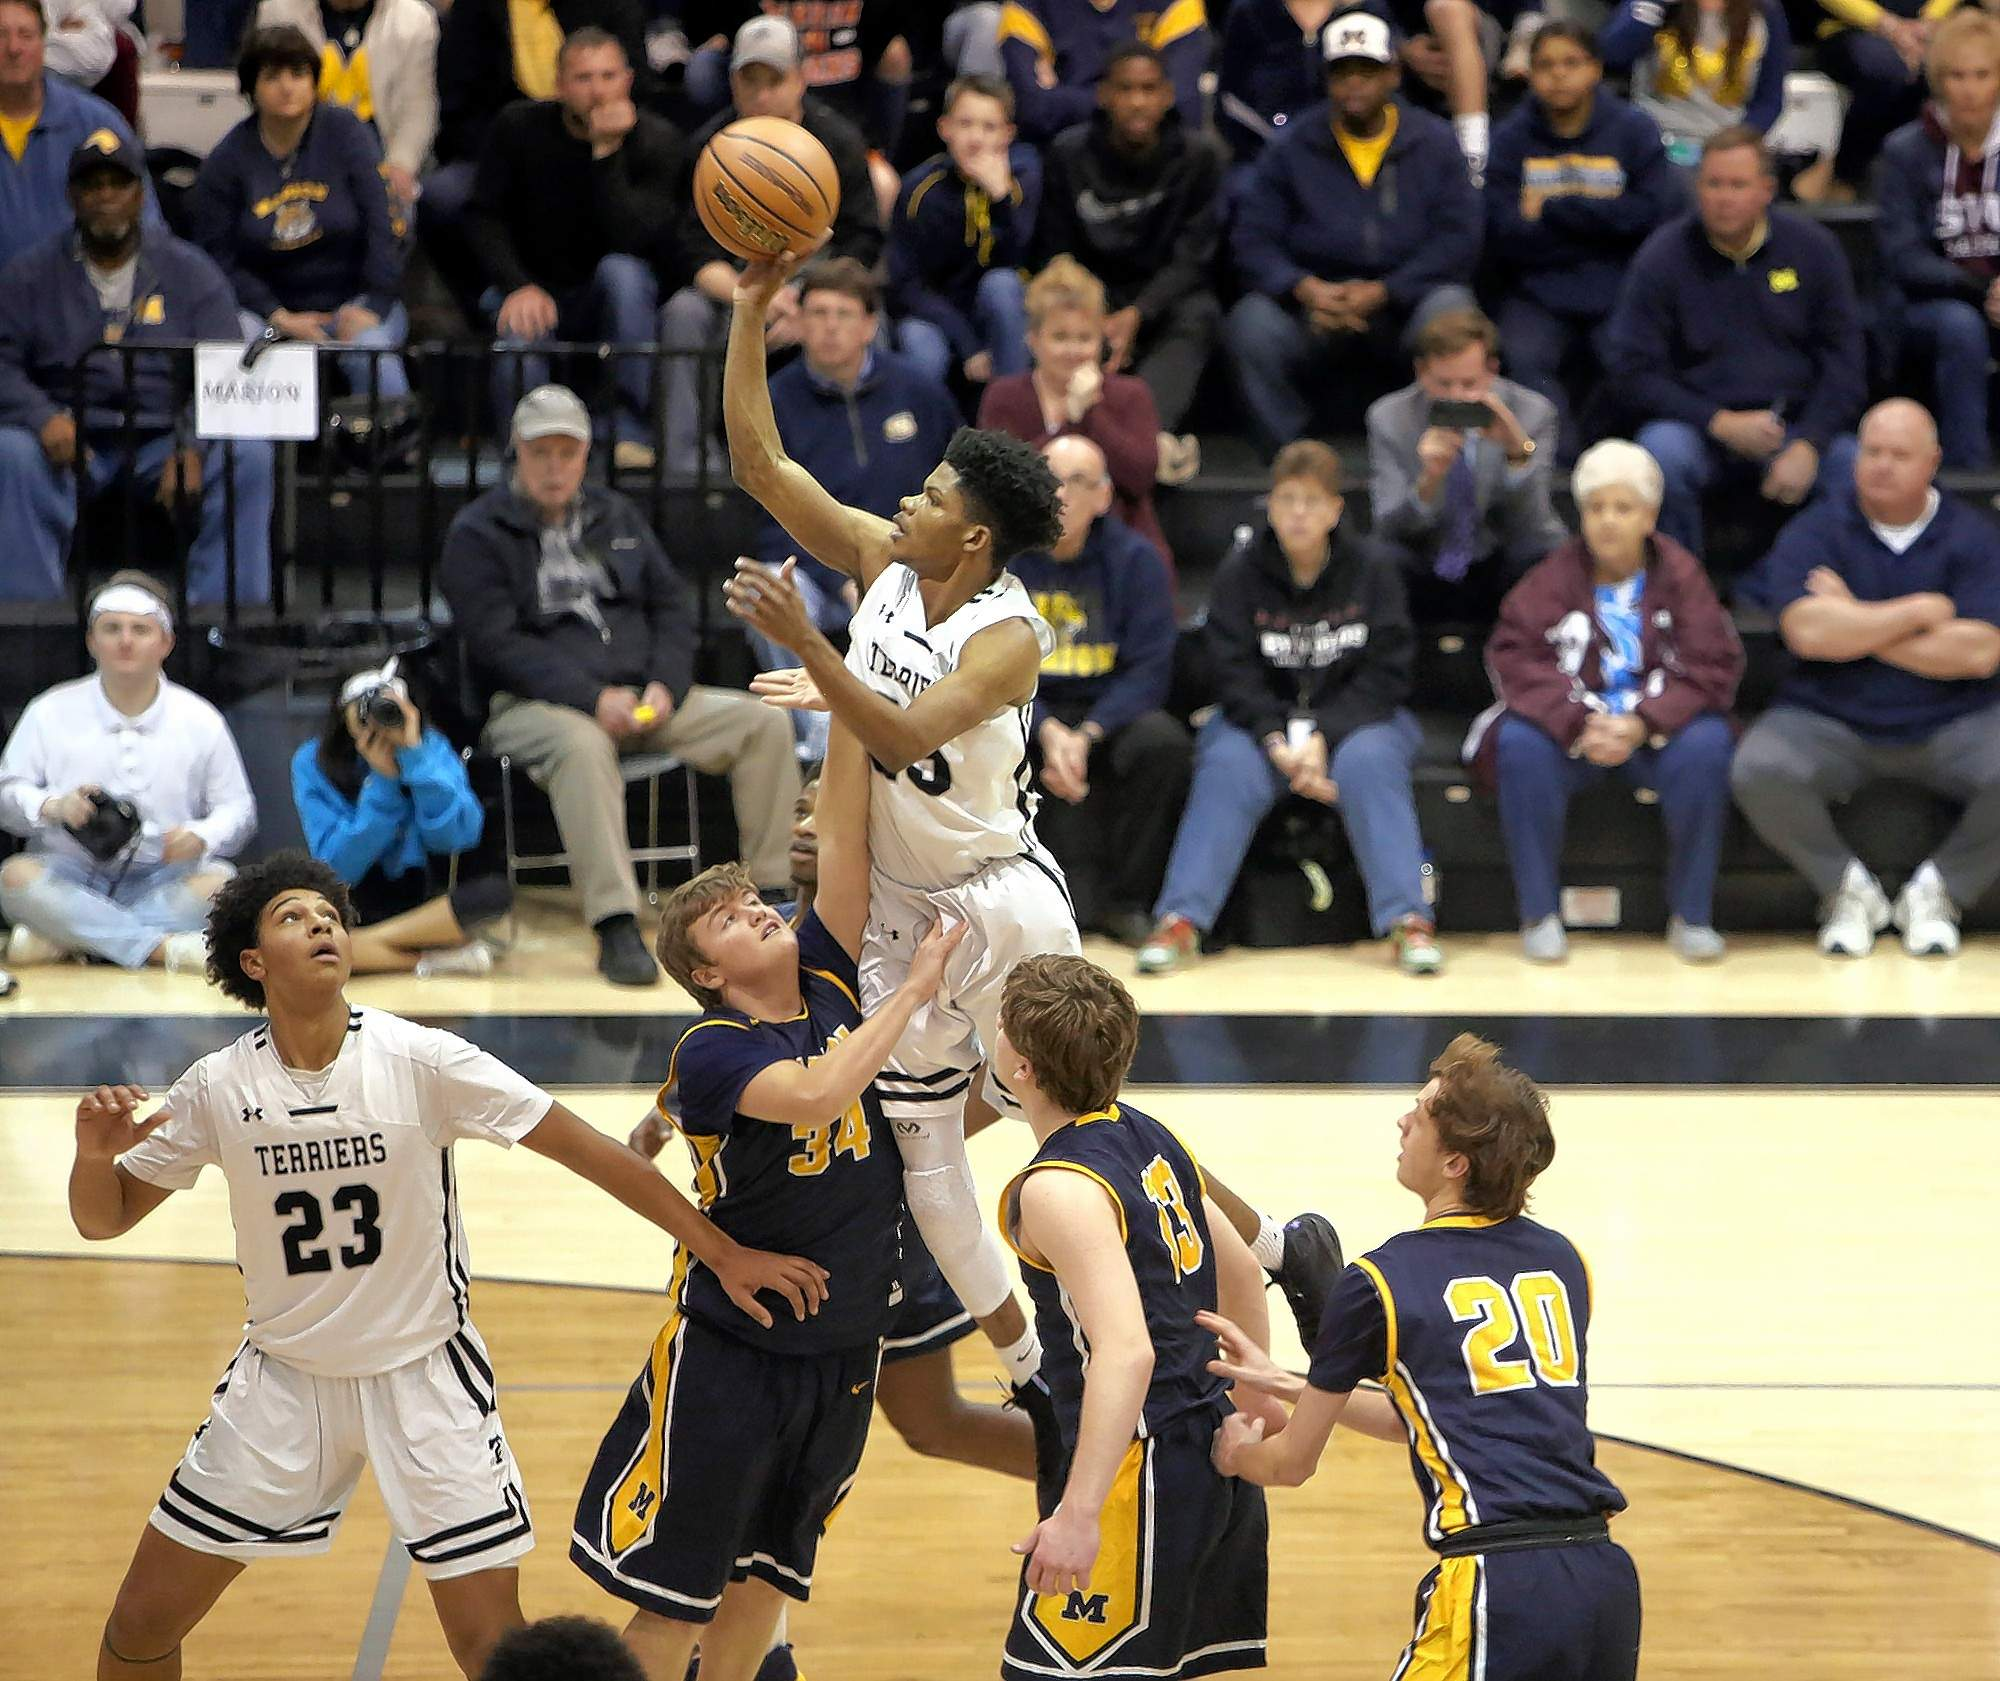 Justin Walker photoCarbondale's Darius Beane puts one up during the Terriers' season-ending loss to Marion Friday night. Beane will go on to play next season for the Salukis.